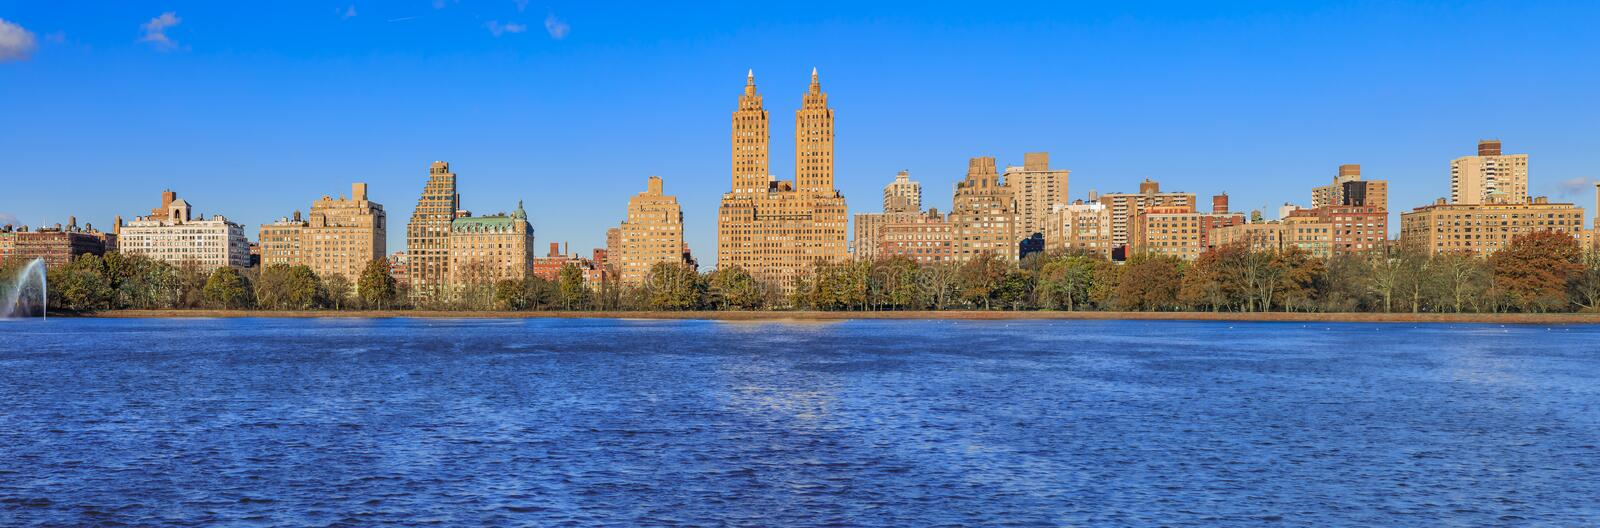 Panorama of New York Manhattan Upper west side skyline across the Jacqueline Kennedy Onassis Reservoir in Central Park. Panoramic View of New York Manhattan stock photos